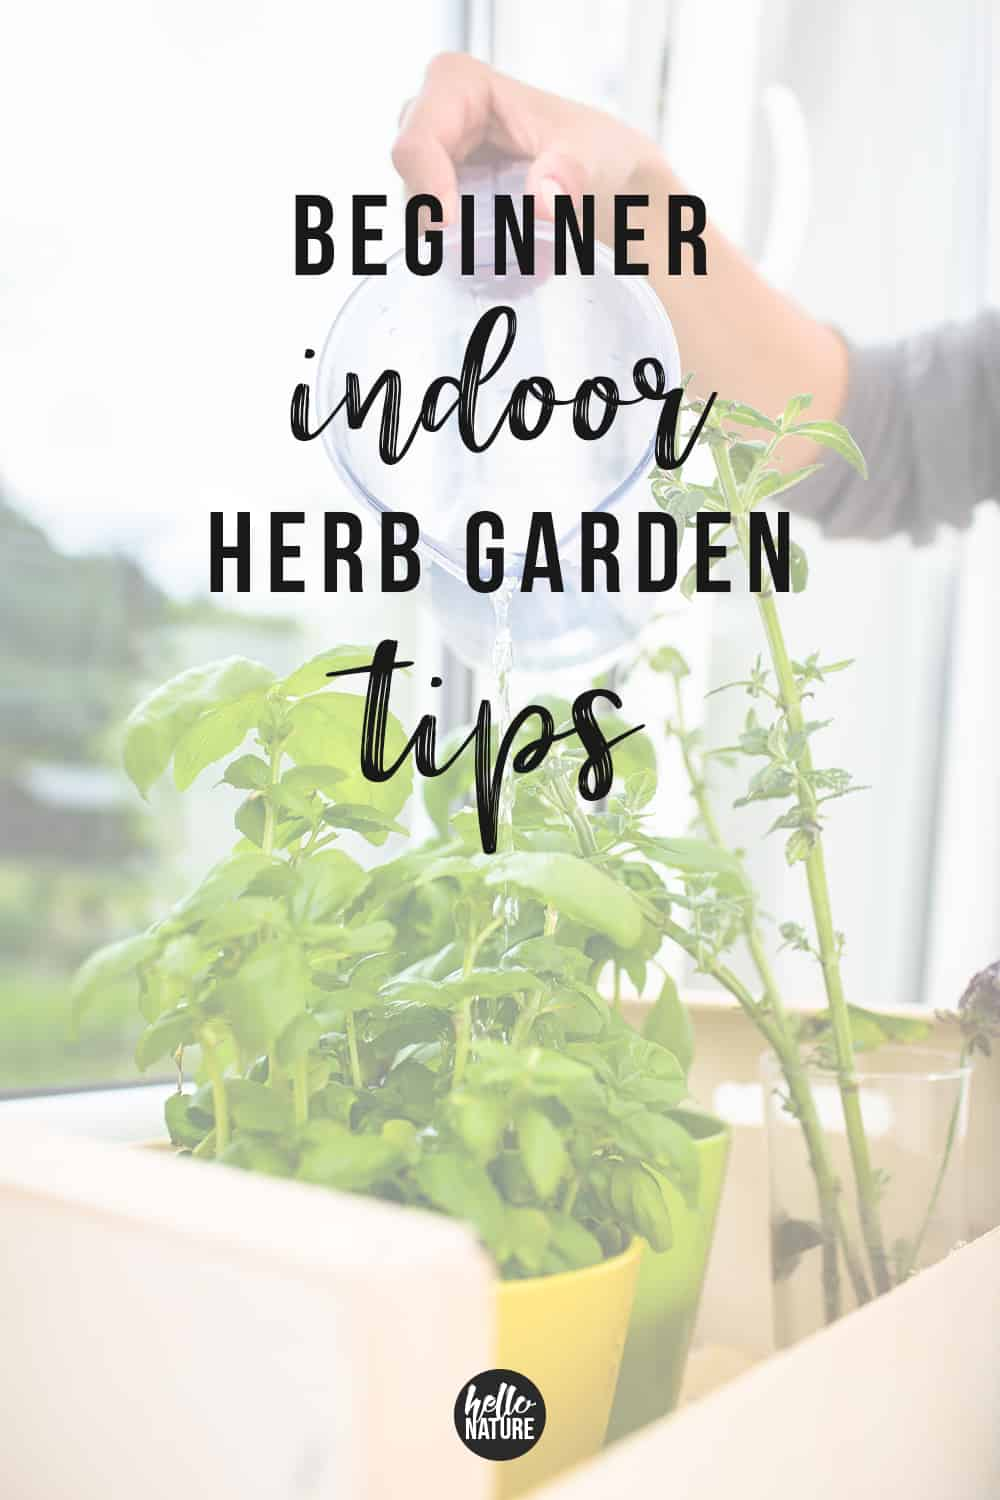 Simple Kitchen Herb Garden Tips for Beginners